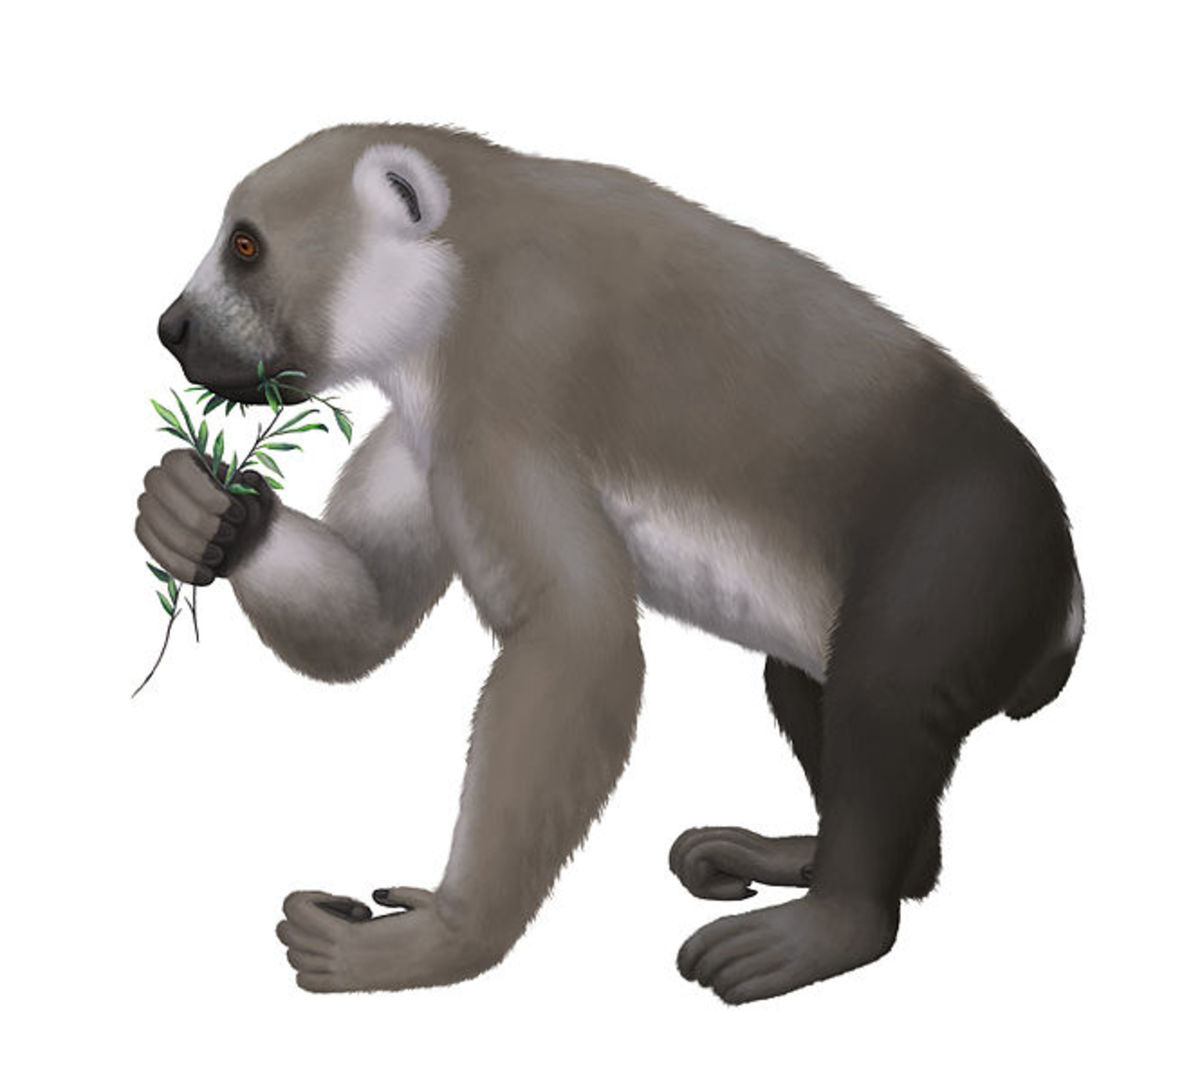 A reconstruction of Archaeoindris, sometimes called the gorilla lemur.